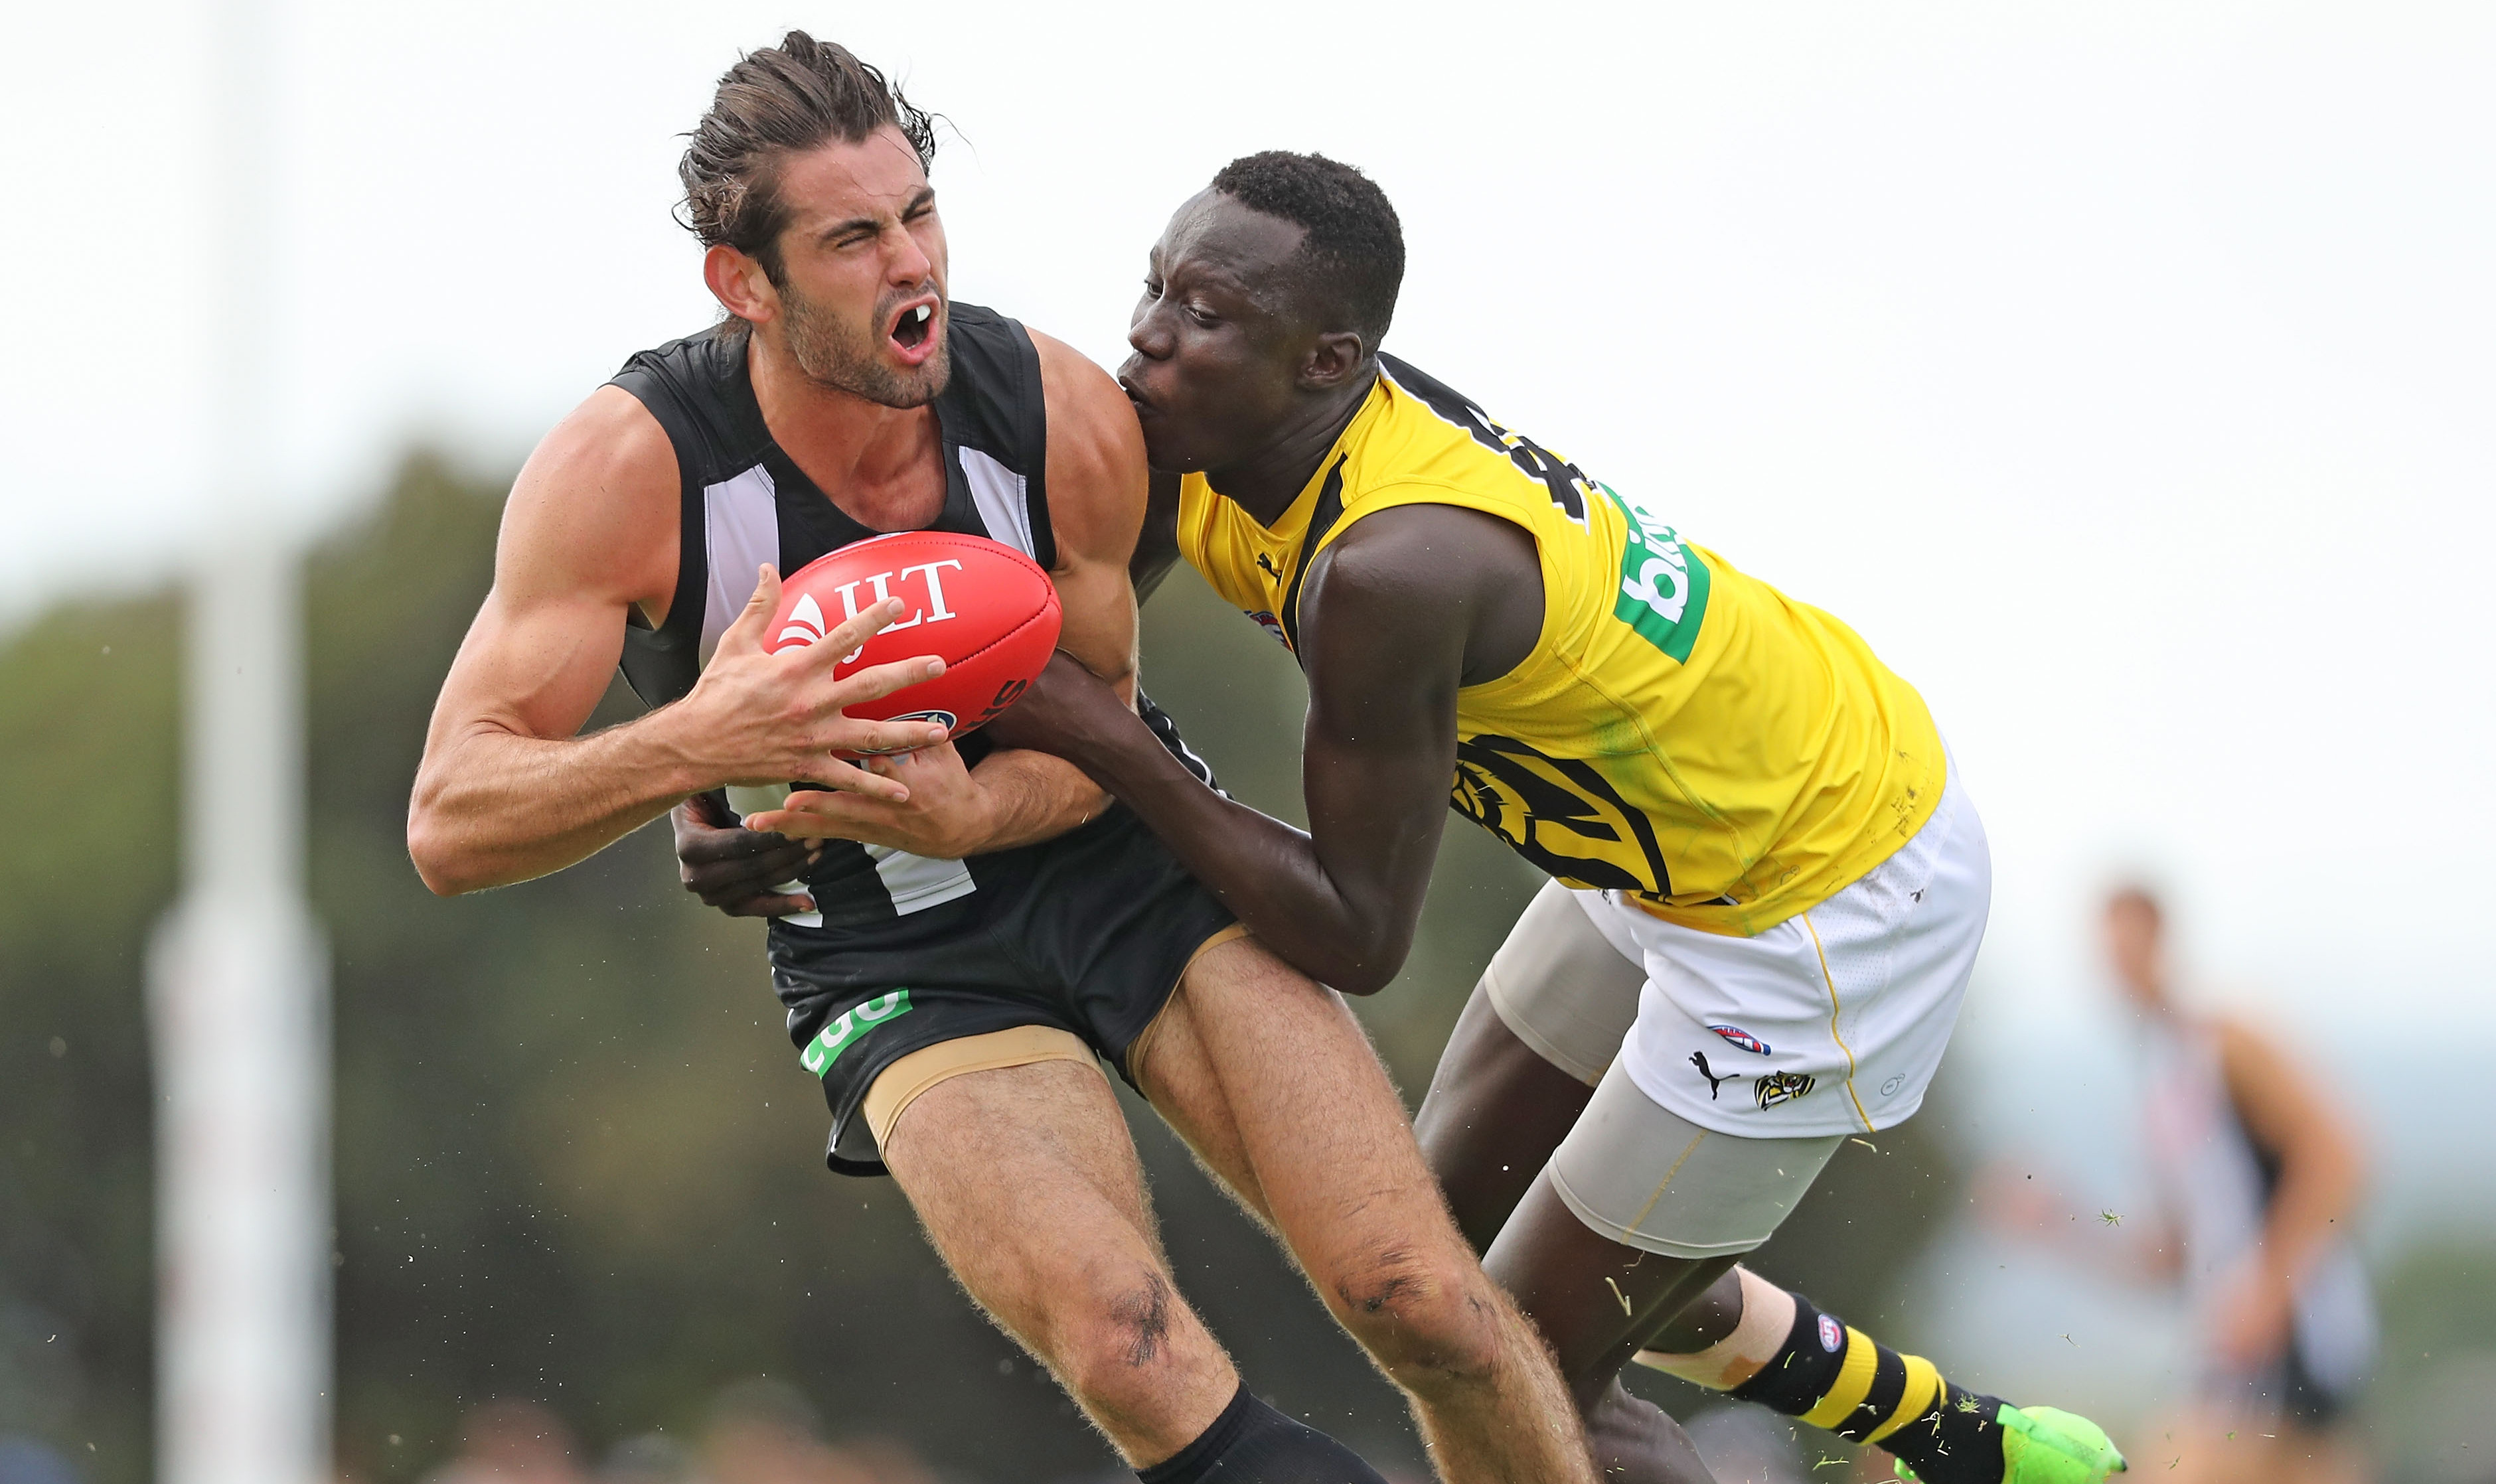 MOE, AUSTRALIA - MARCH 11:  Brodie Grundy of the Magpies is tackled by Mabior Chol of the Tigers during the 2017 JLT Community Series AFL match between the Richmond Tigers and the Collingwood Magpies at Ted Summerton Reserve on March 11, 2017 in Moe, Australia.  (Photo by Scott Barbour/Getty Images)